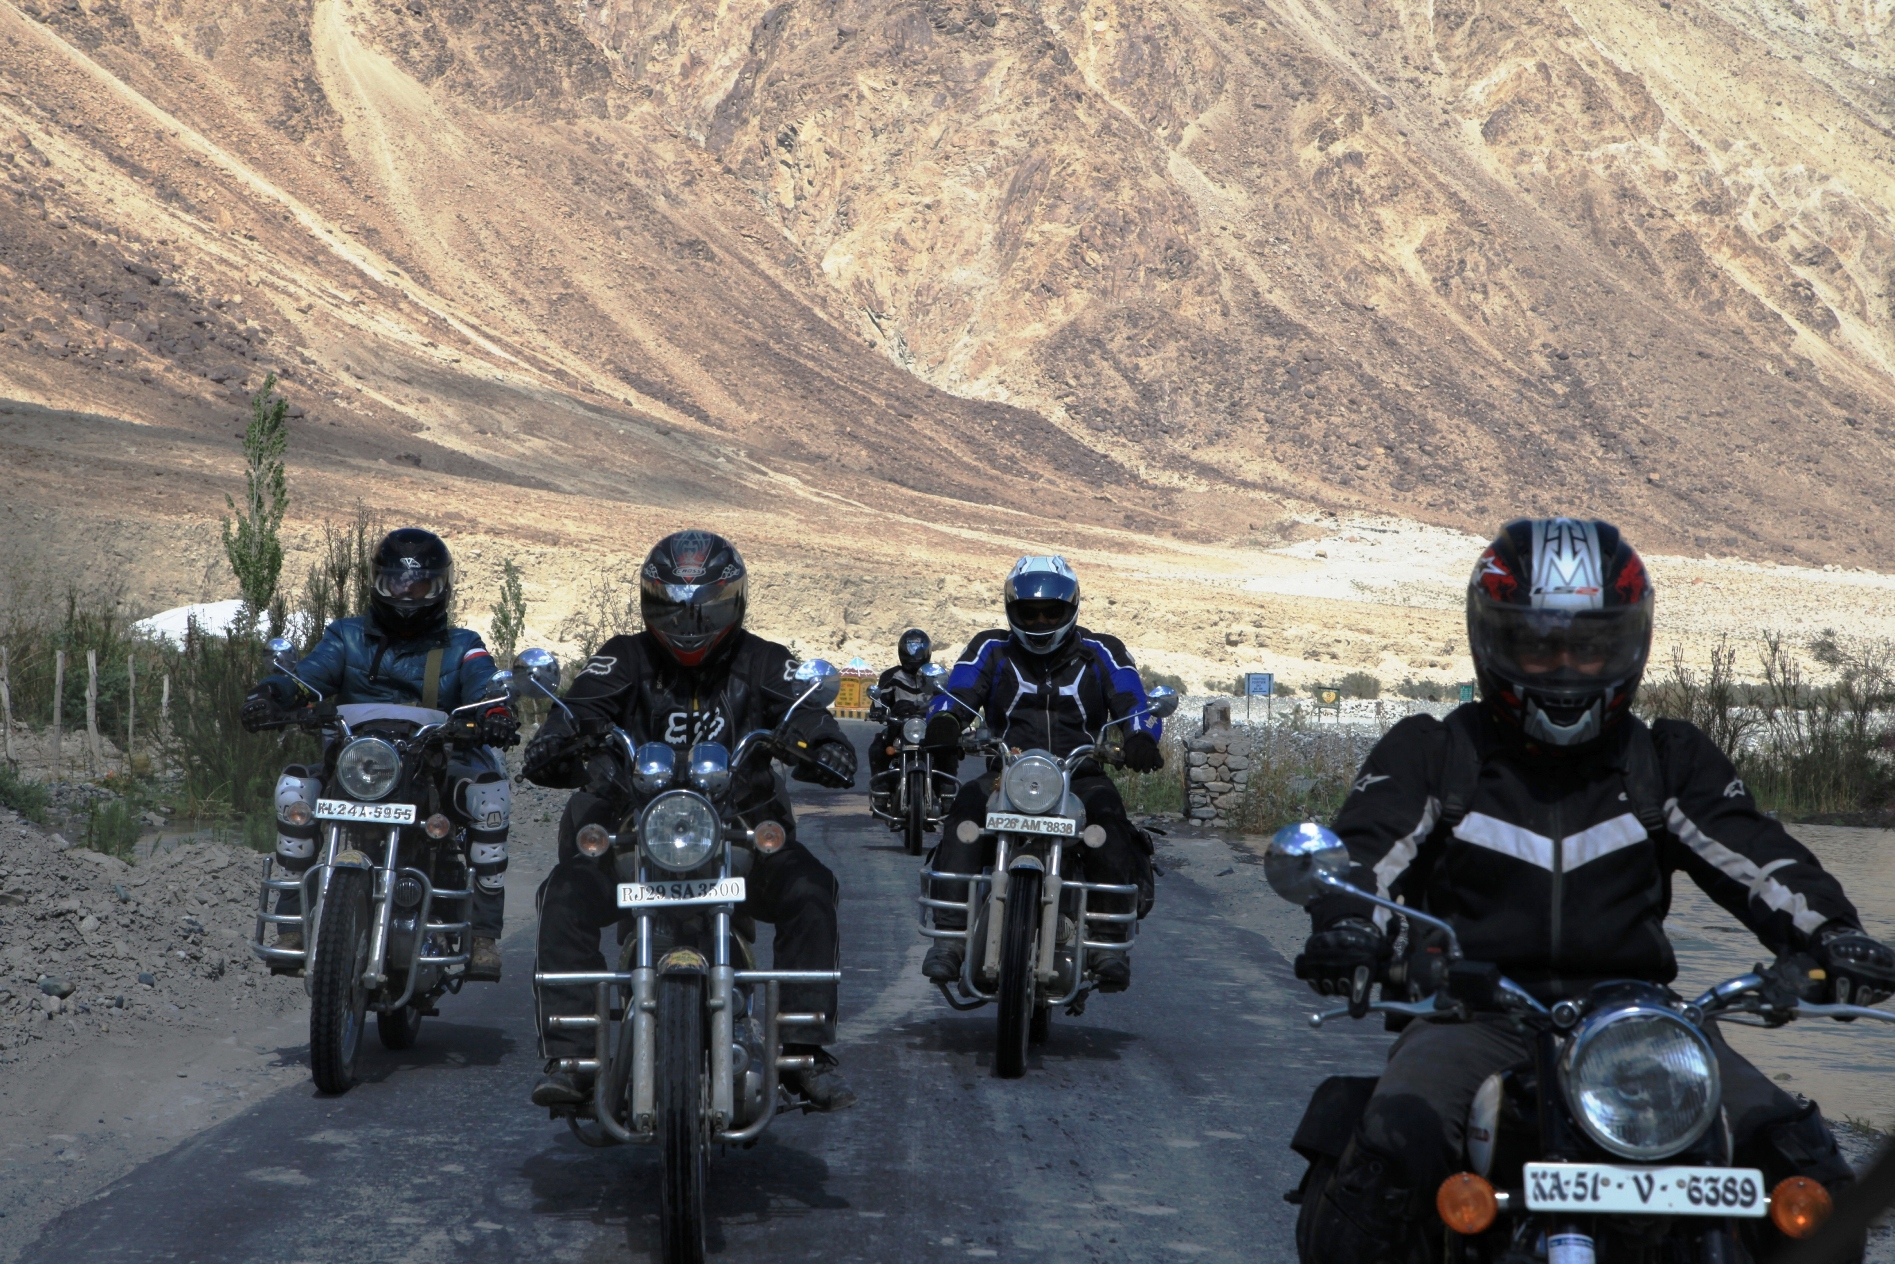 July 23, 2012-Royal-Enfield-Himalayan-Odyssey-20121.JPG